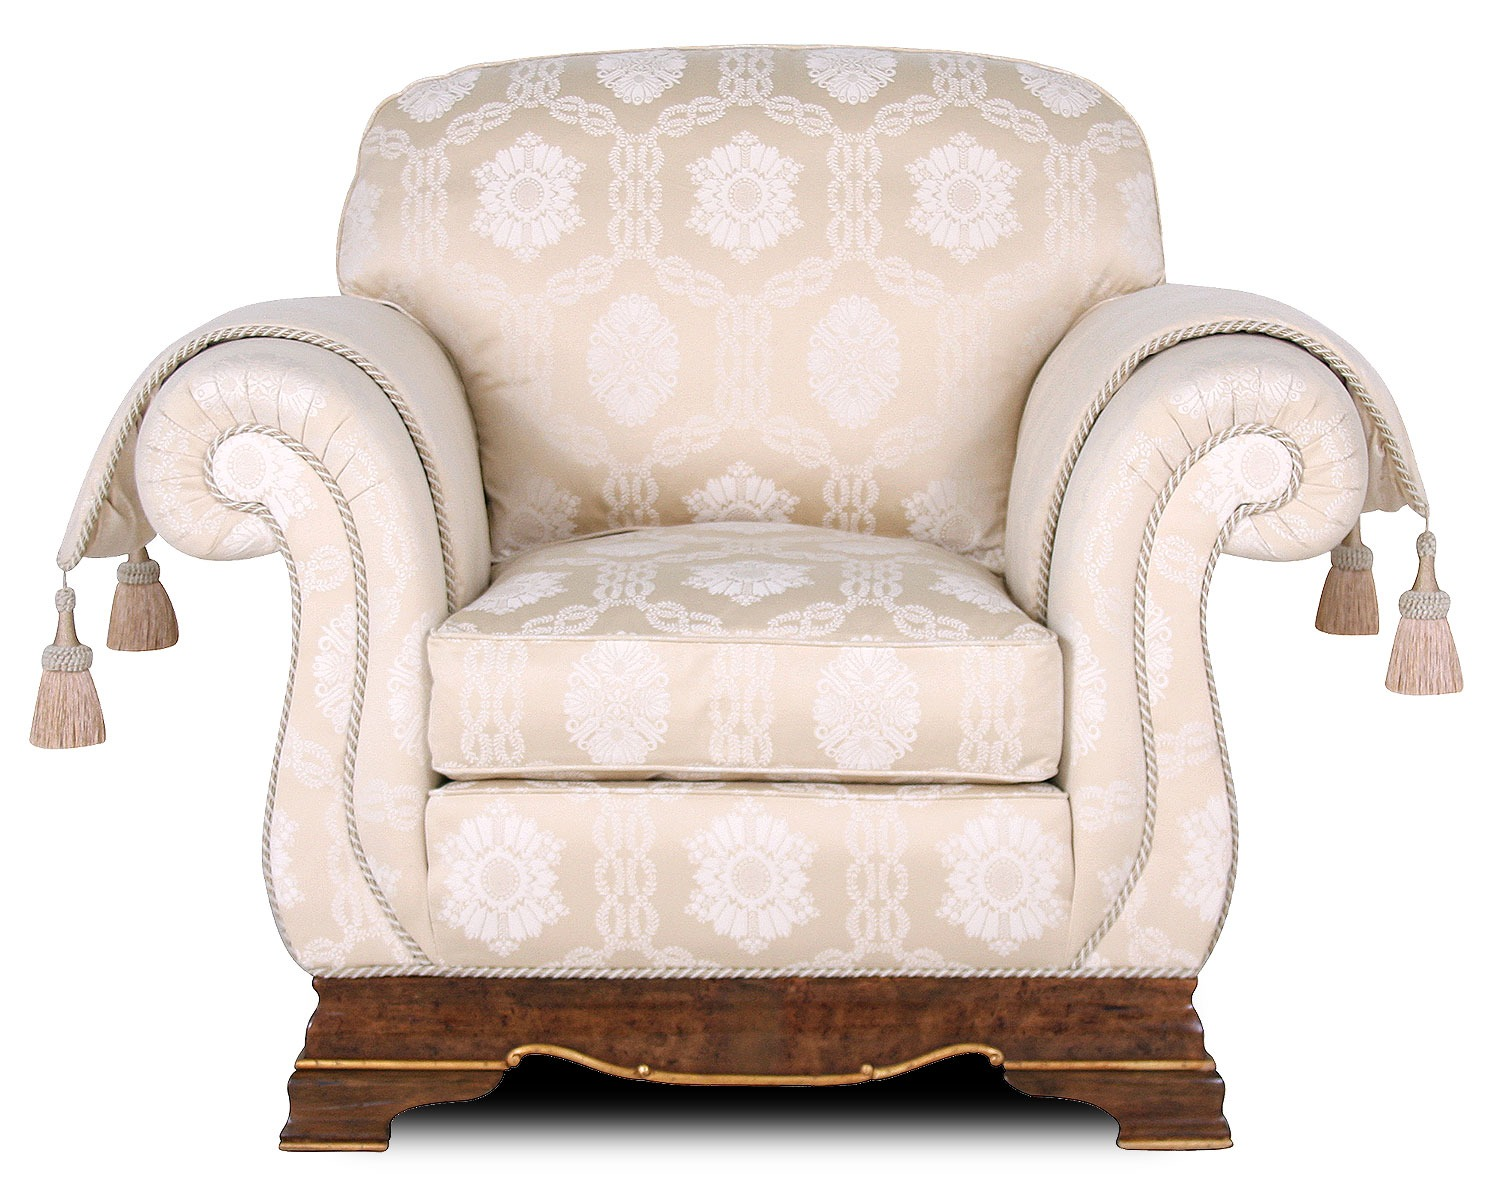 Dorchester chair in cotton jacquard